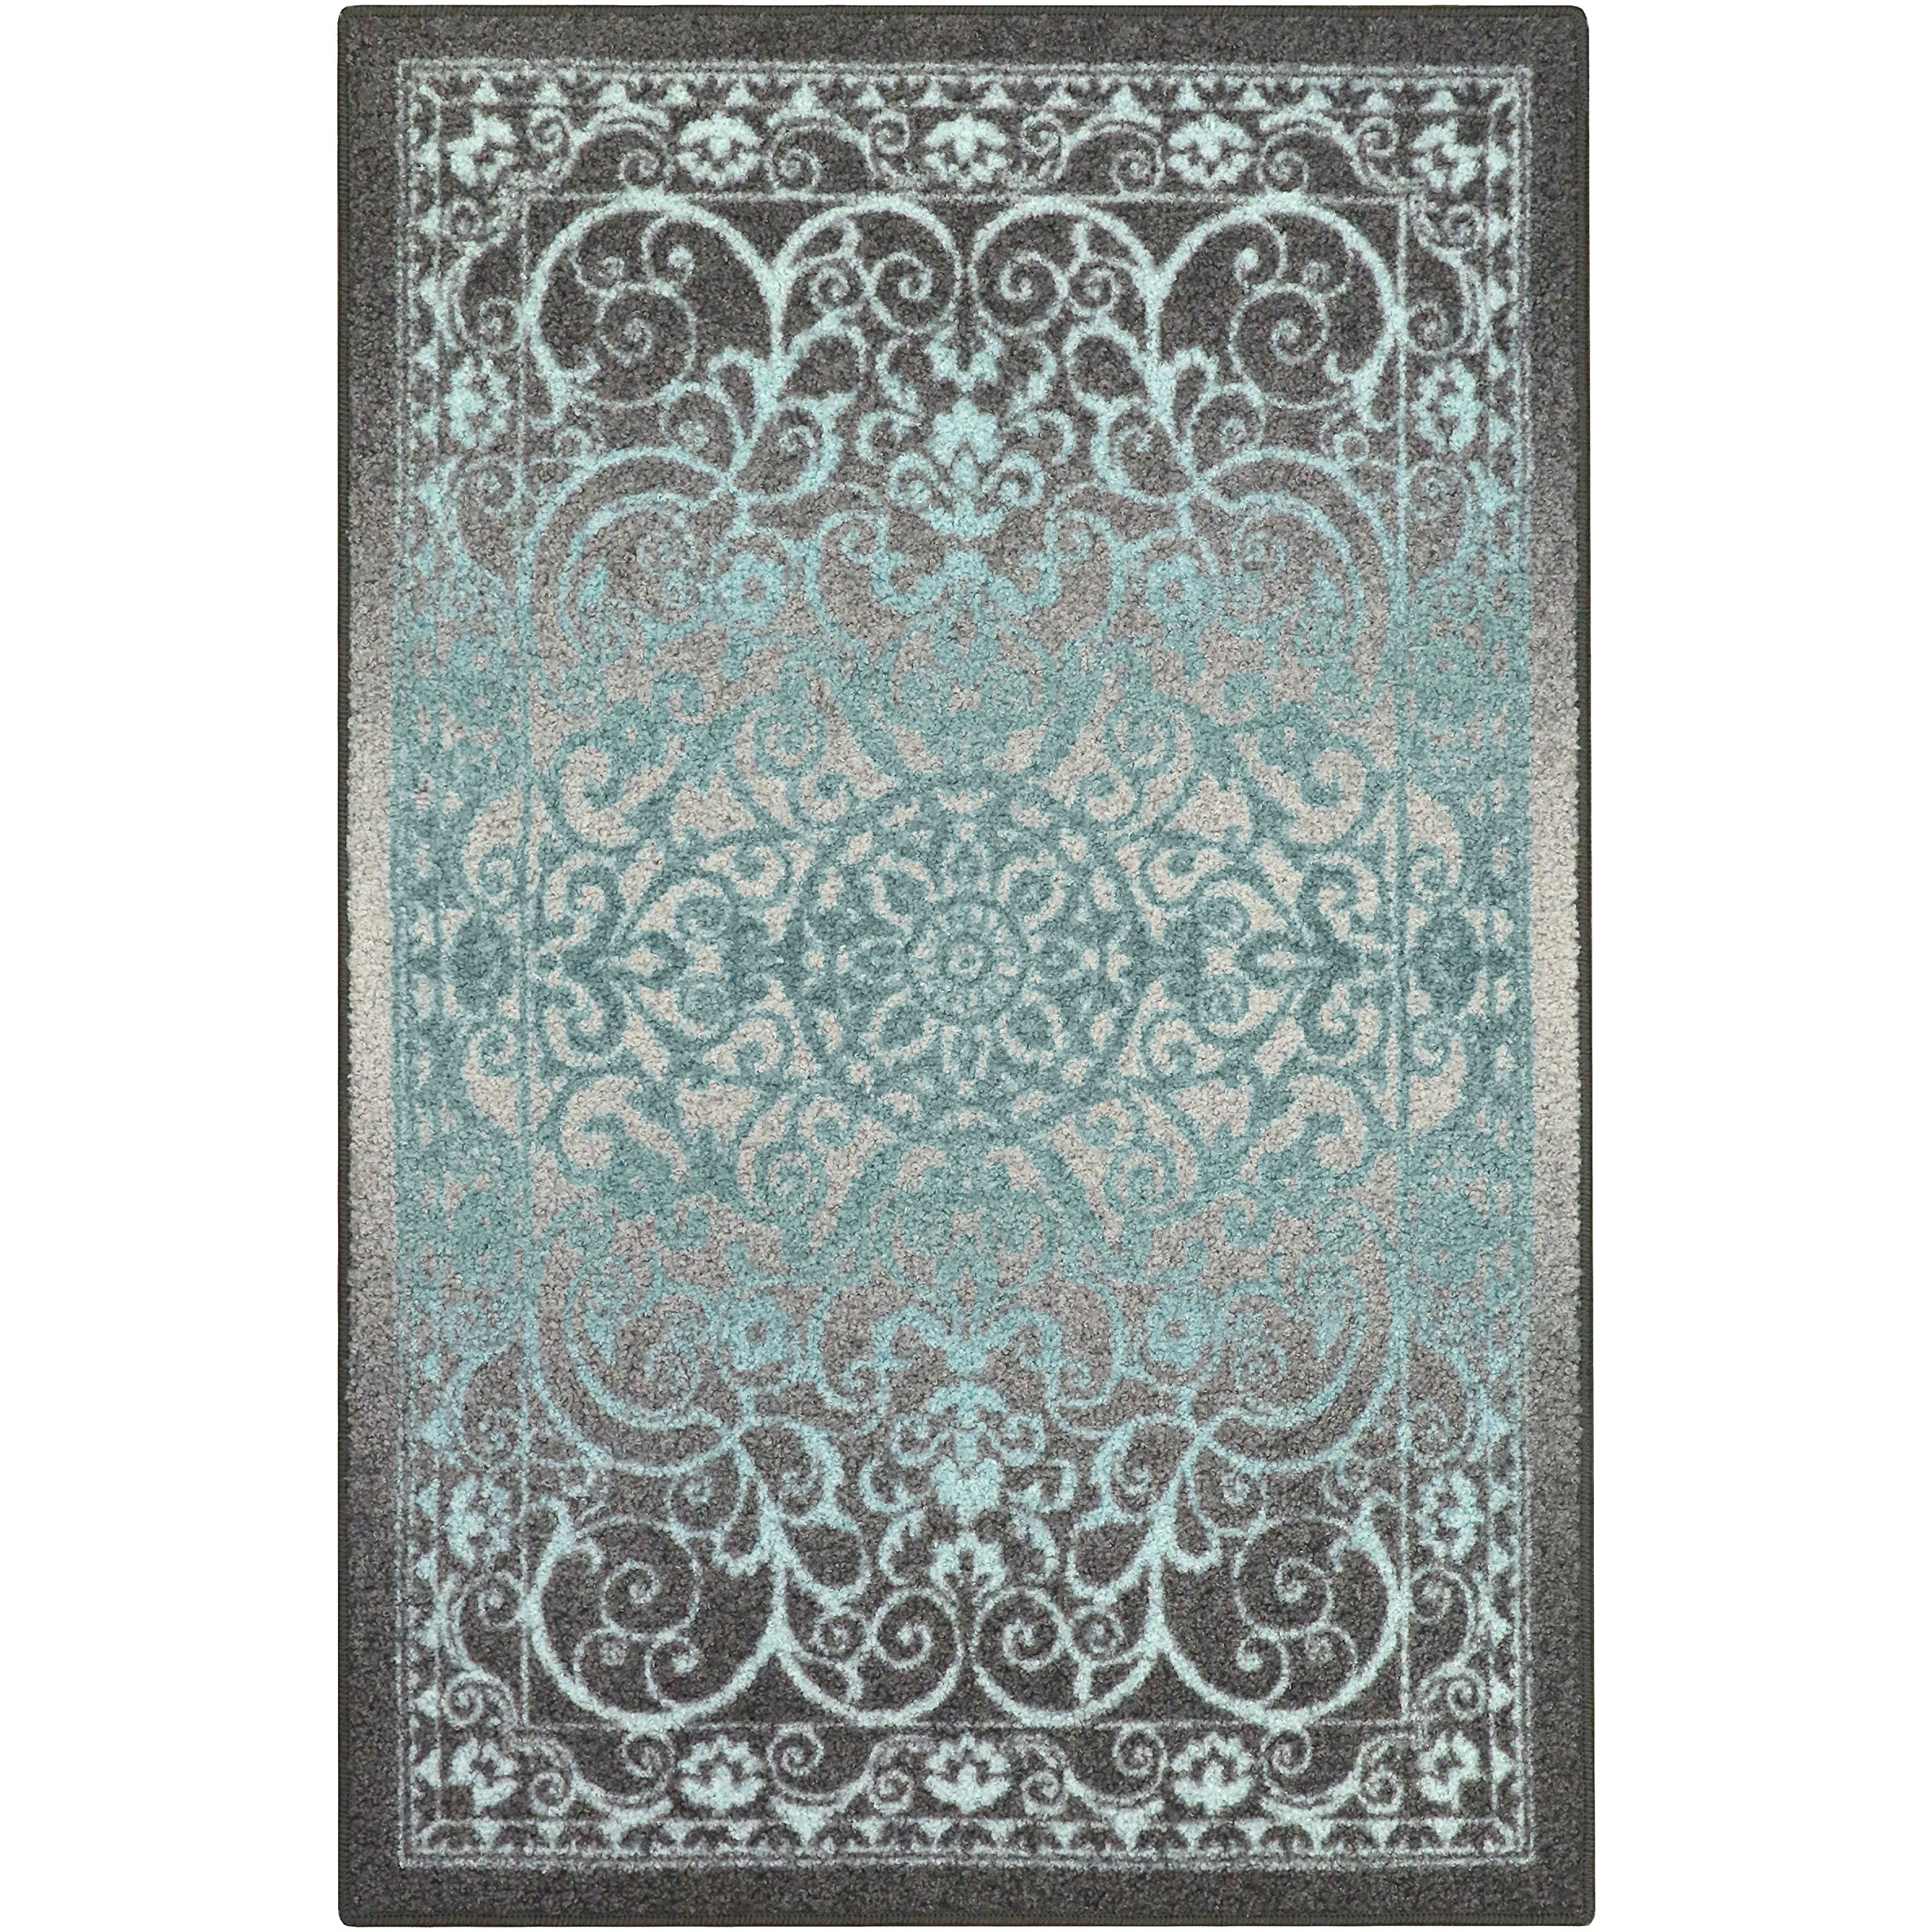 Maples Rugs Pelham 5 x 7 Non Slip Large Area Rugs [Made in USA] for Living, Bedroom, and Dining Room, Grey/Blue